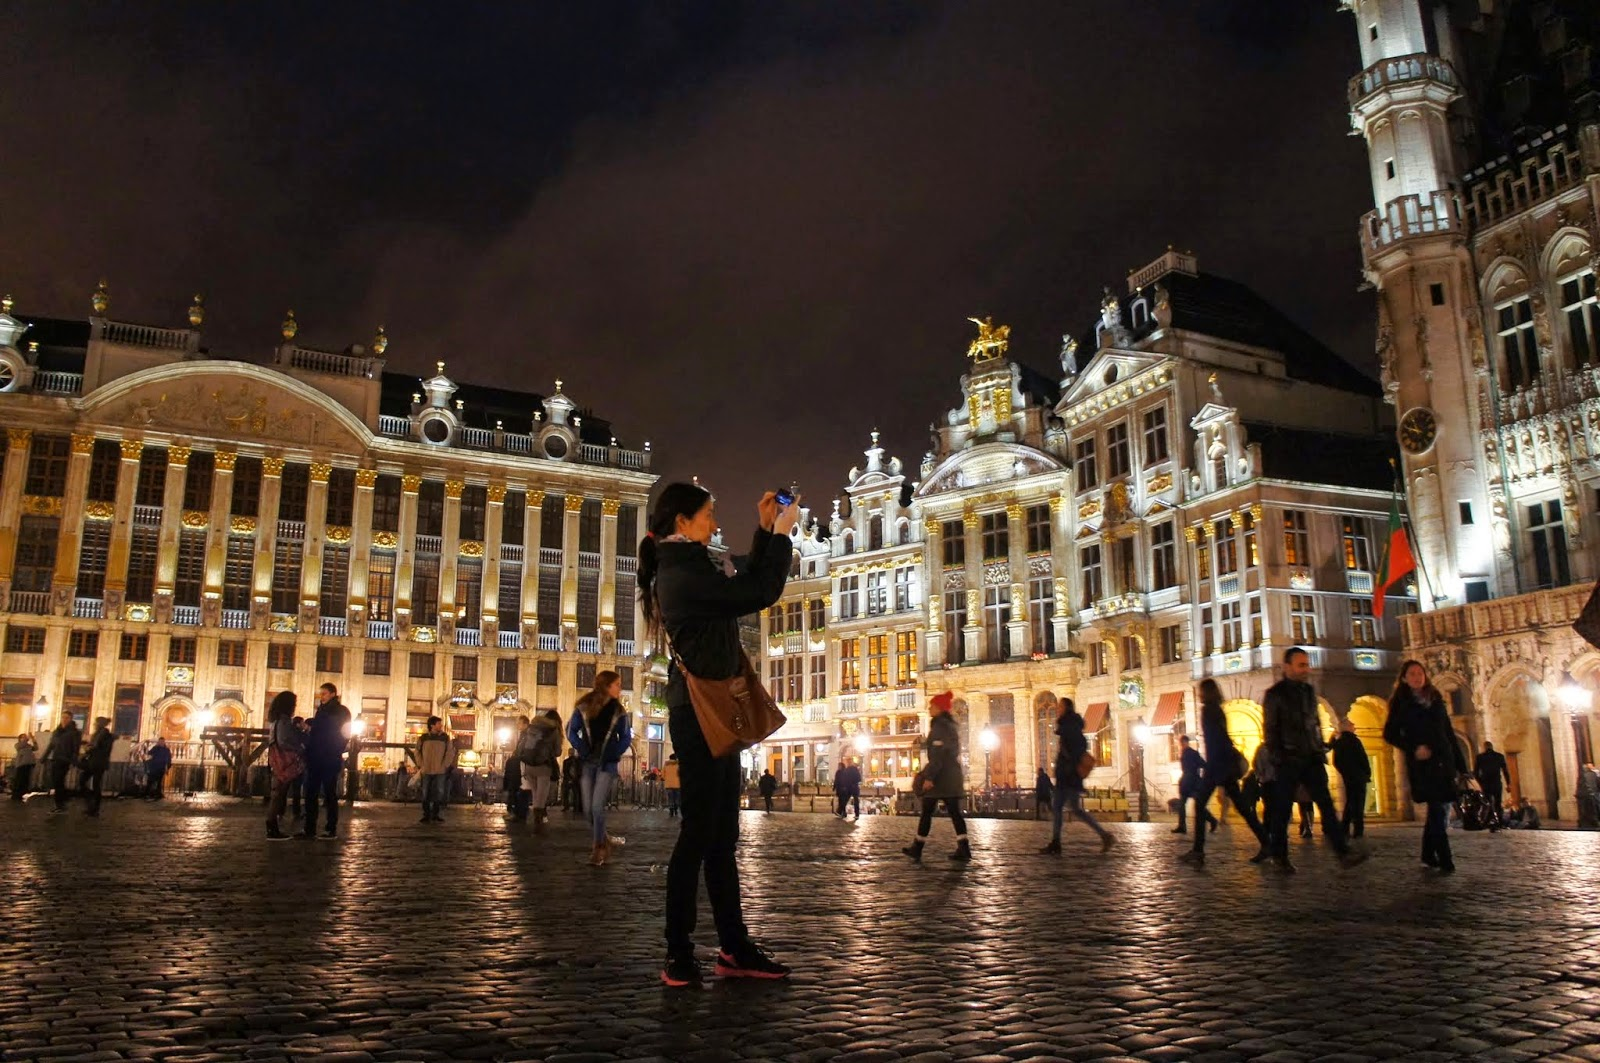 Brussels - Grand Place at night is gorgeous